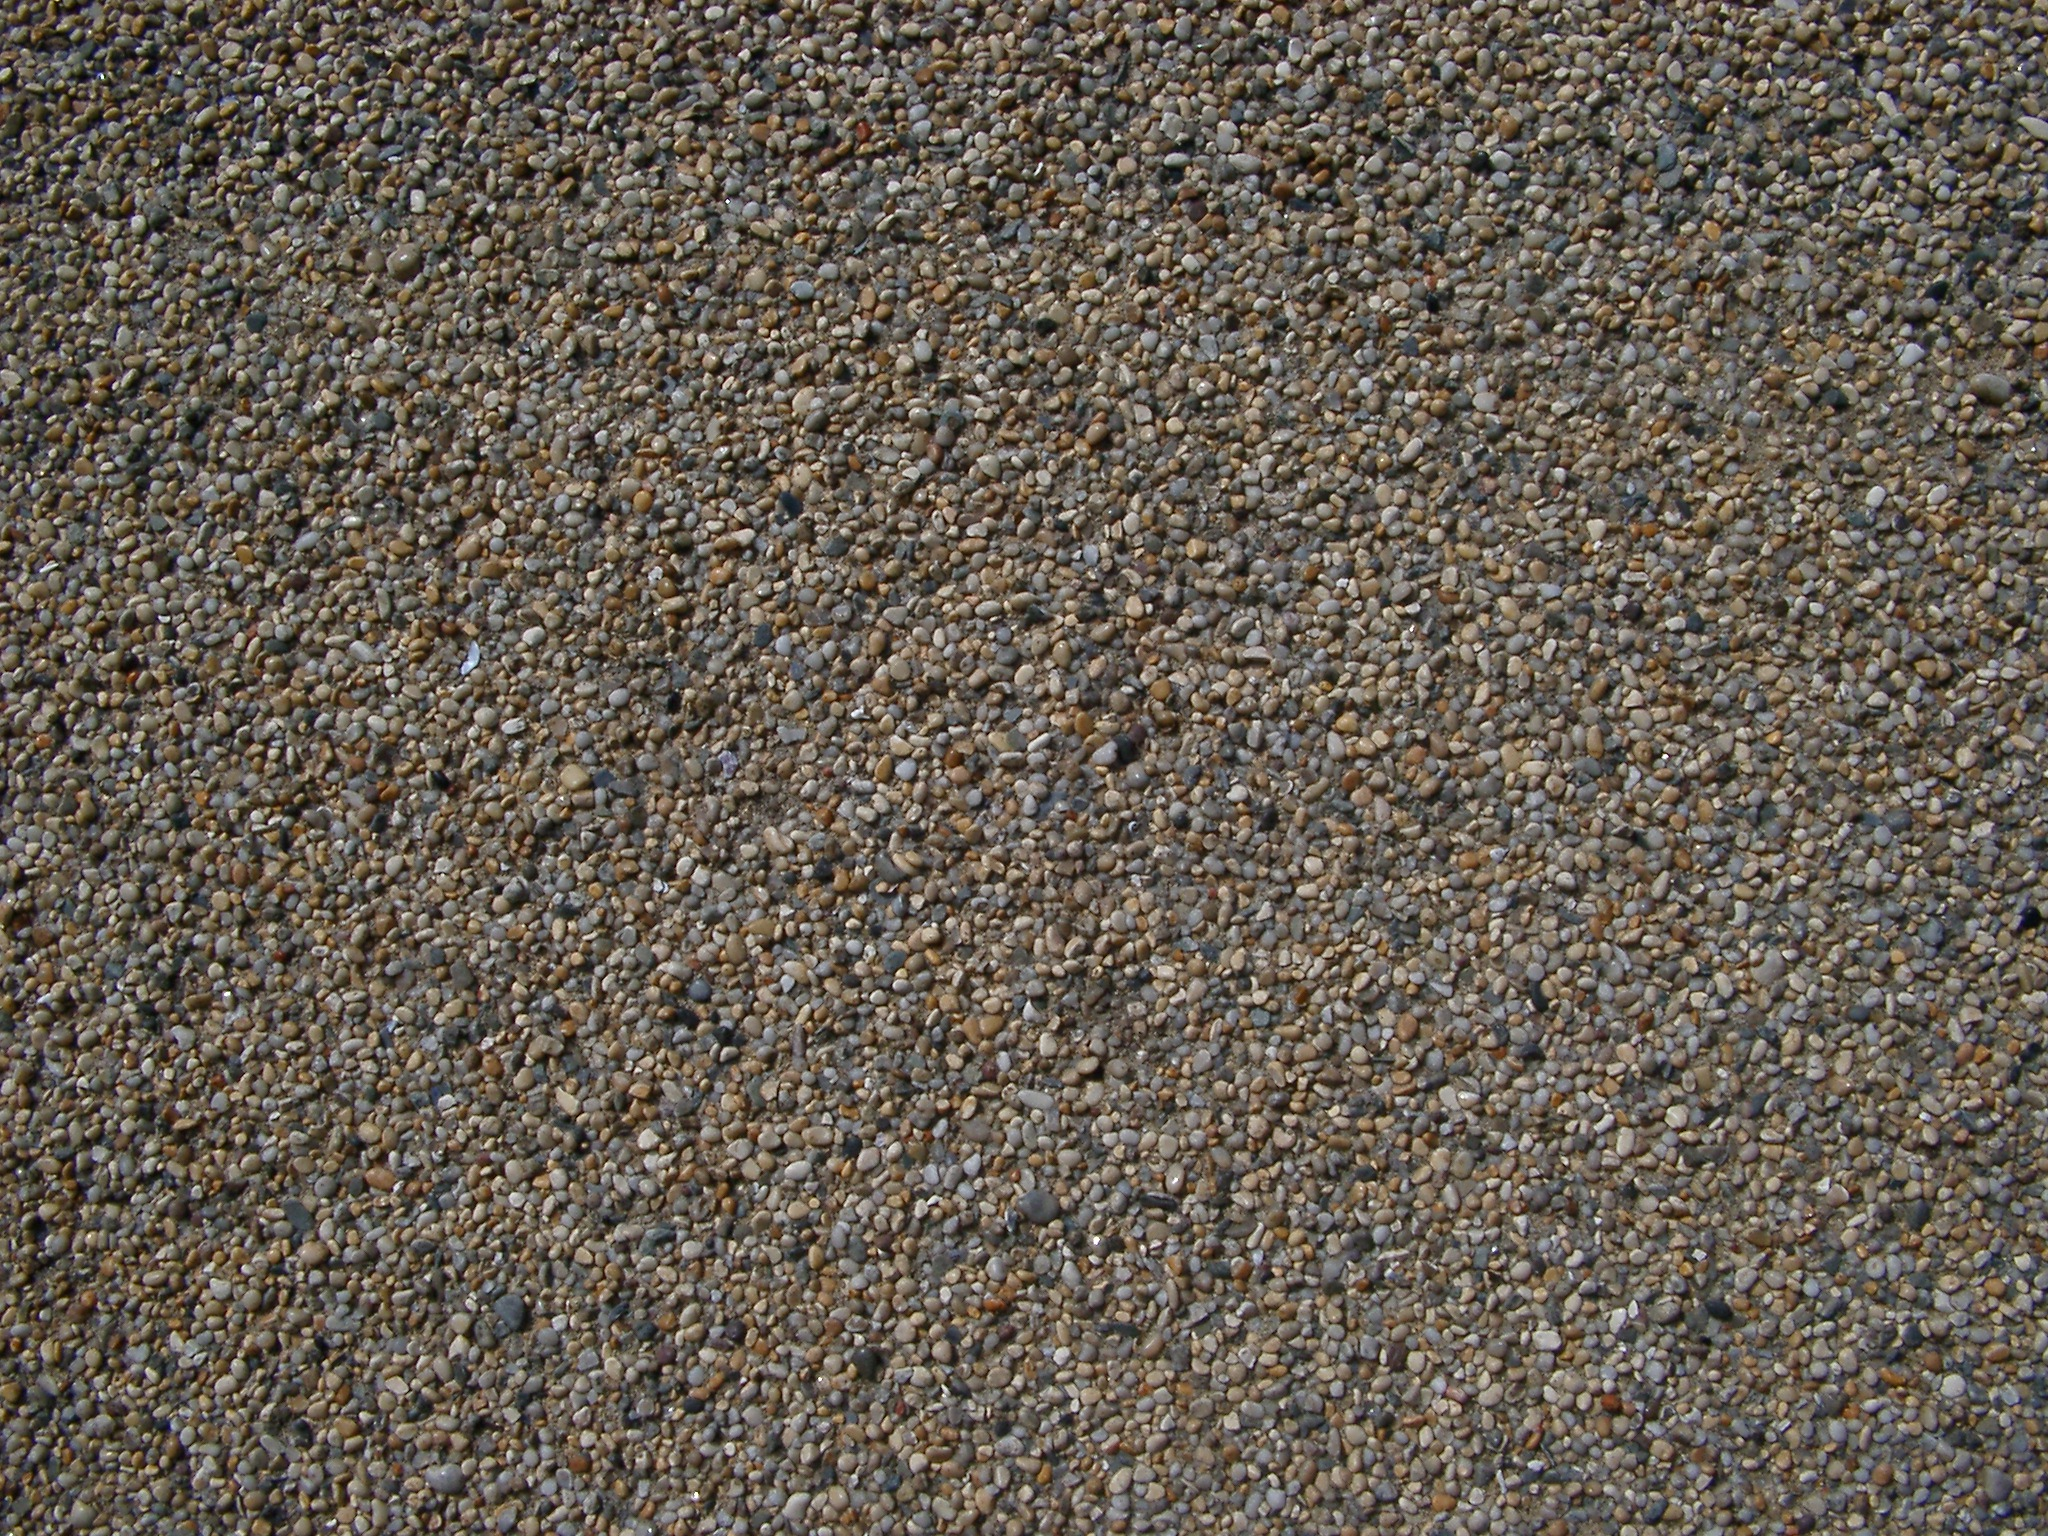 Free Stock Photo 167 Pebblecrete 1040 Jpg Freeimageslive